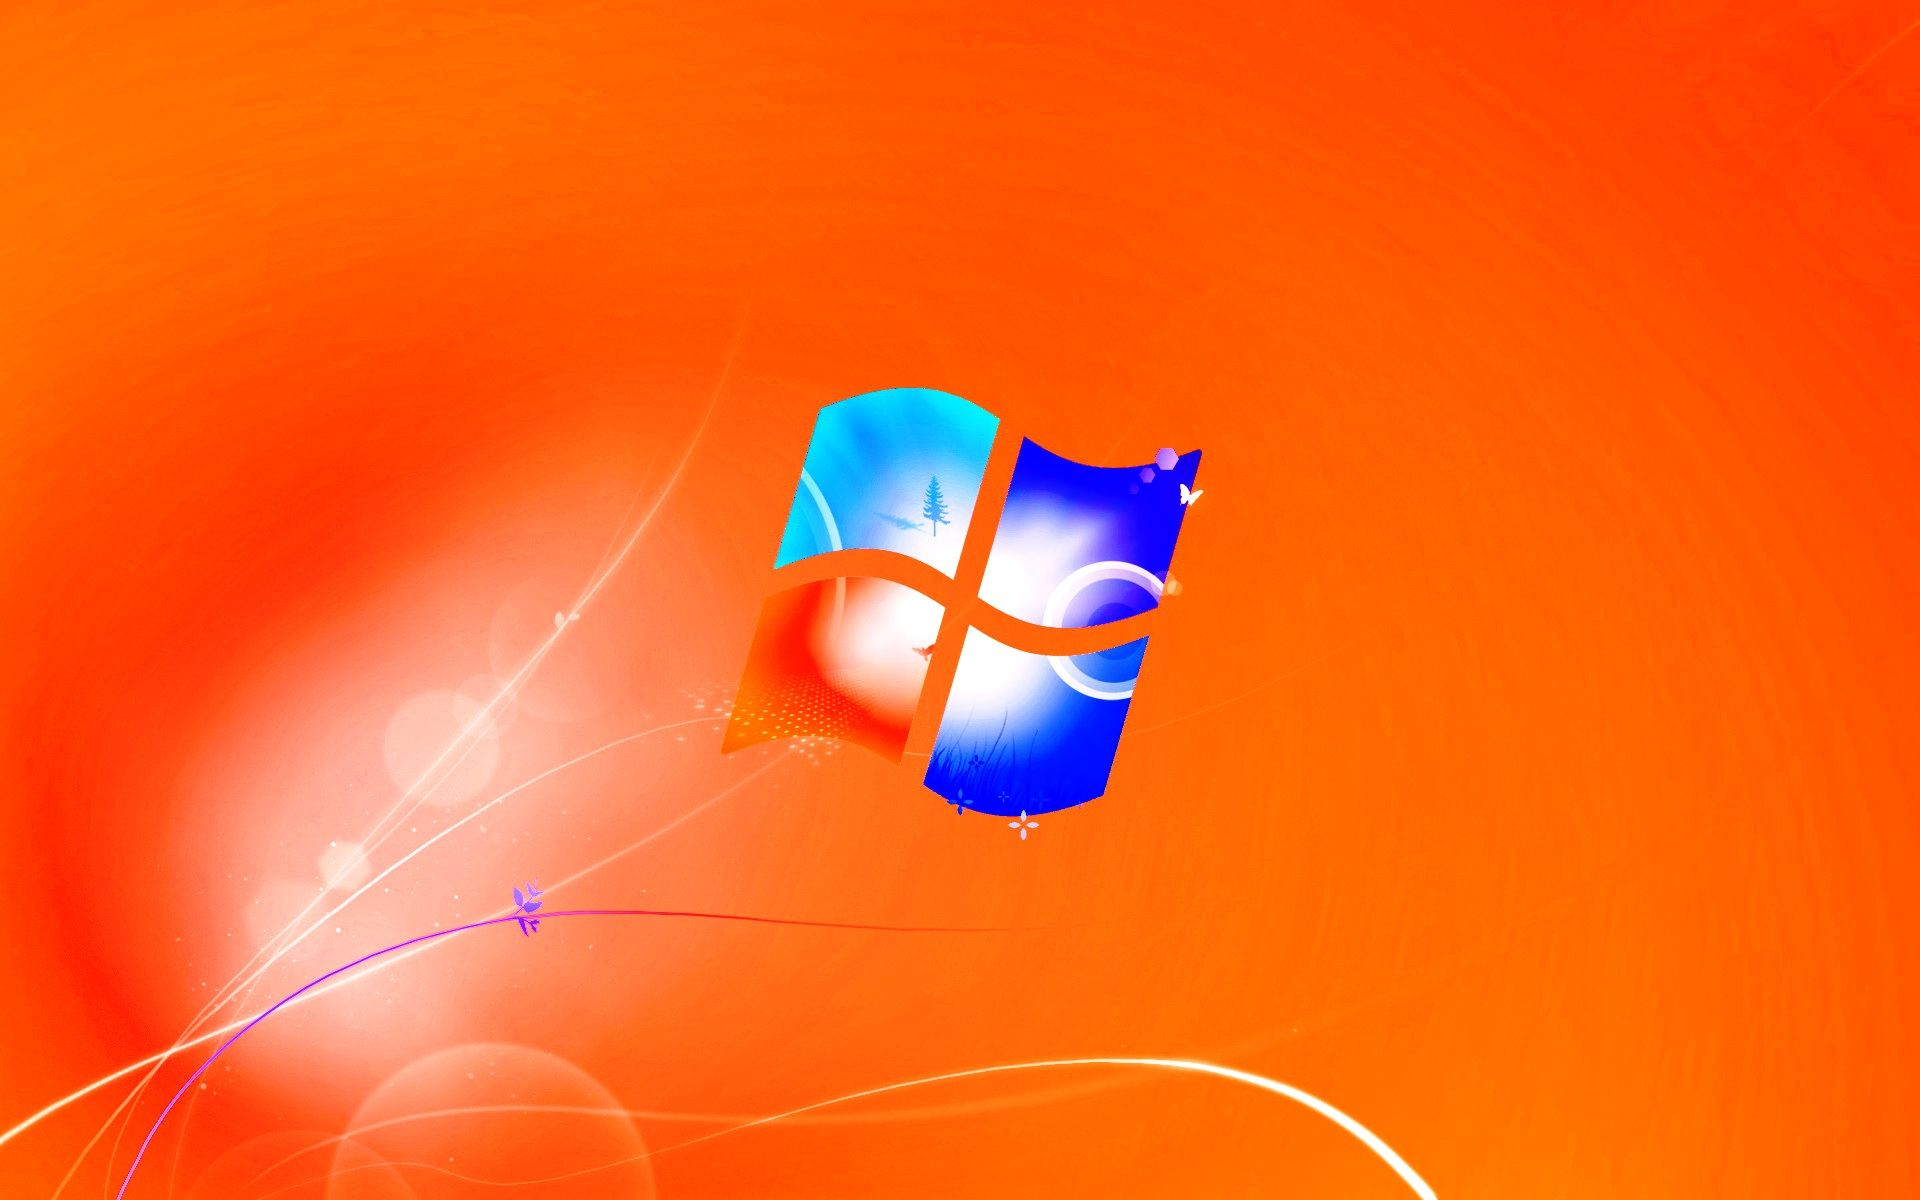 Download Animated Wallpaper Windows 7 Full Version Gallery 1920x1200